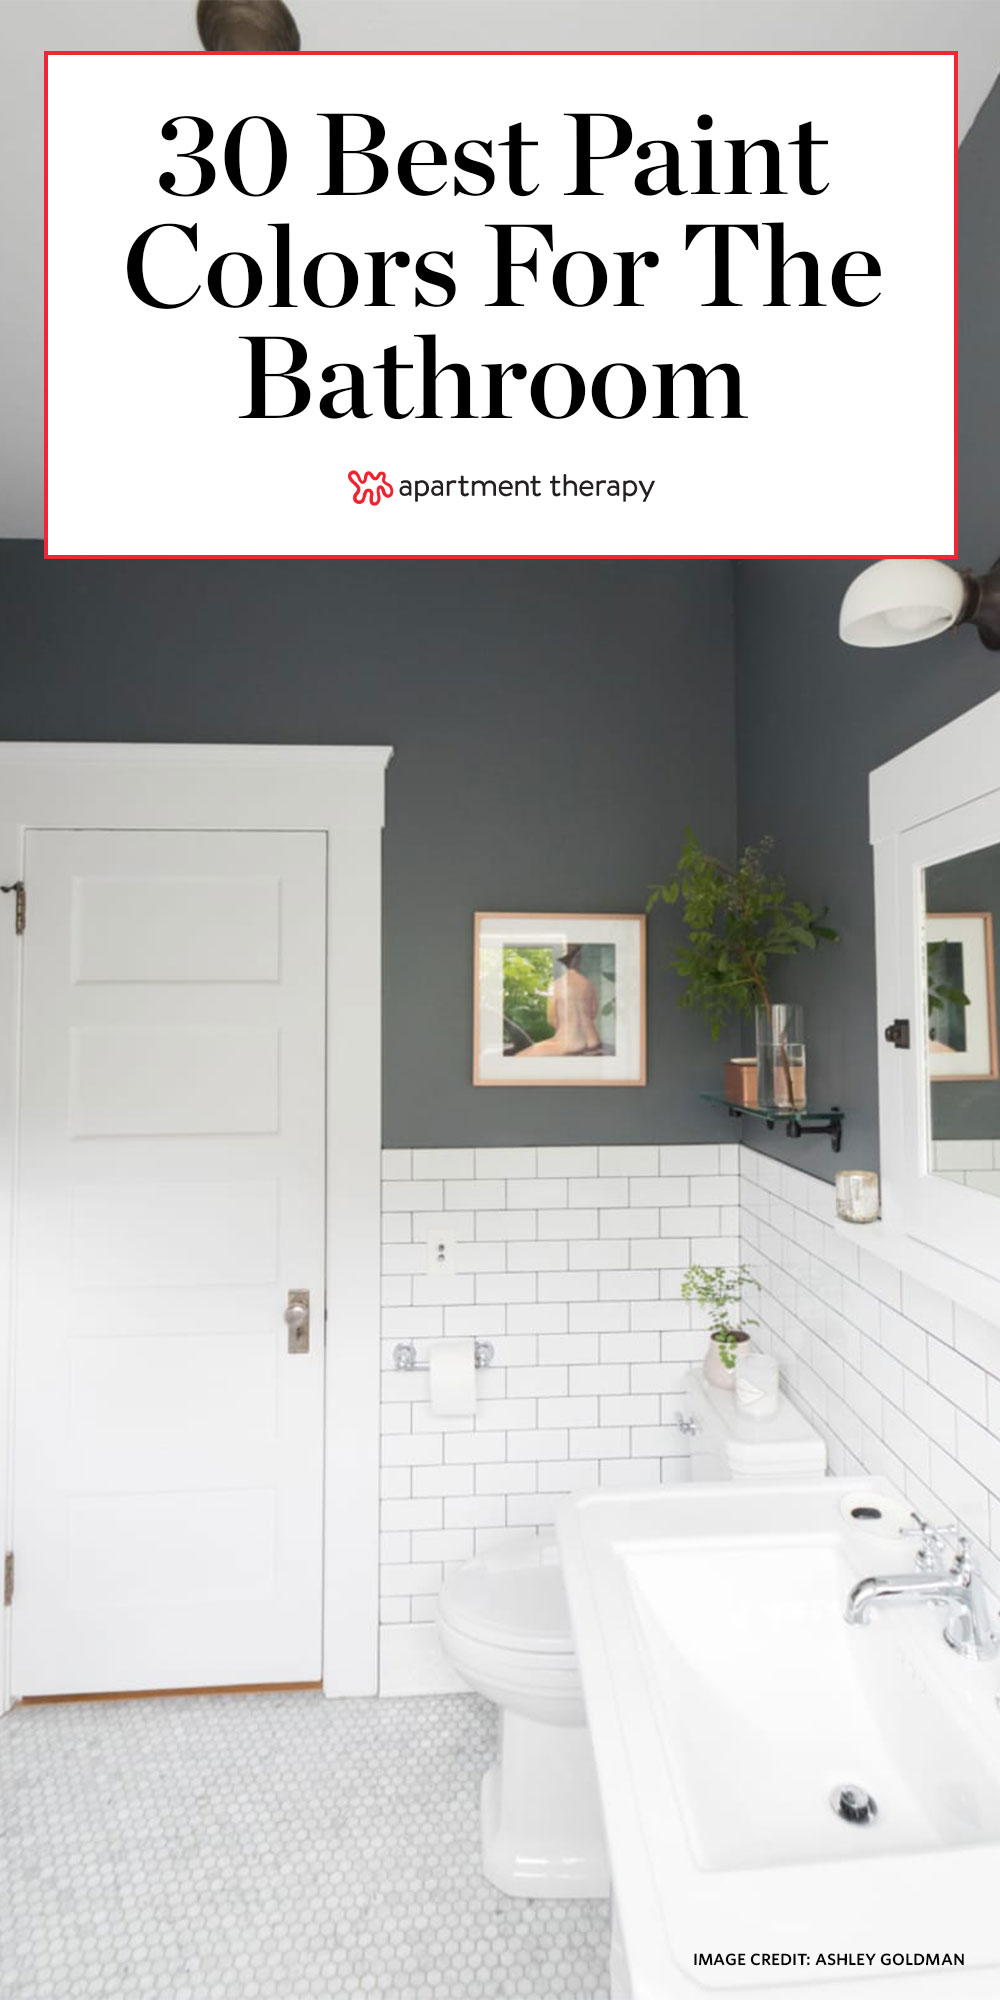 The 30 Best Bathroom Colors - Bathroom Paint Color Ideas | Apartment Therapy